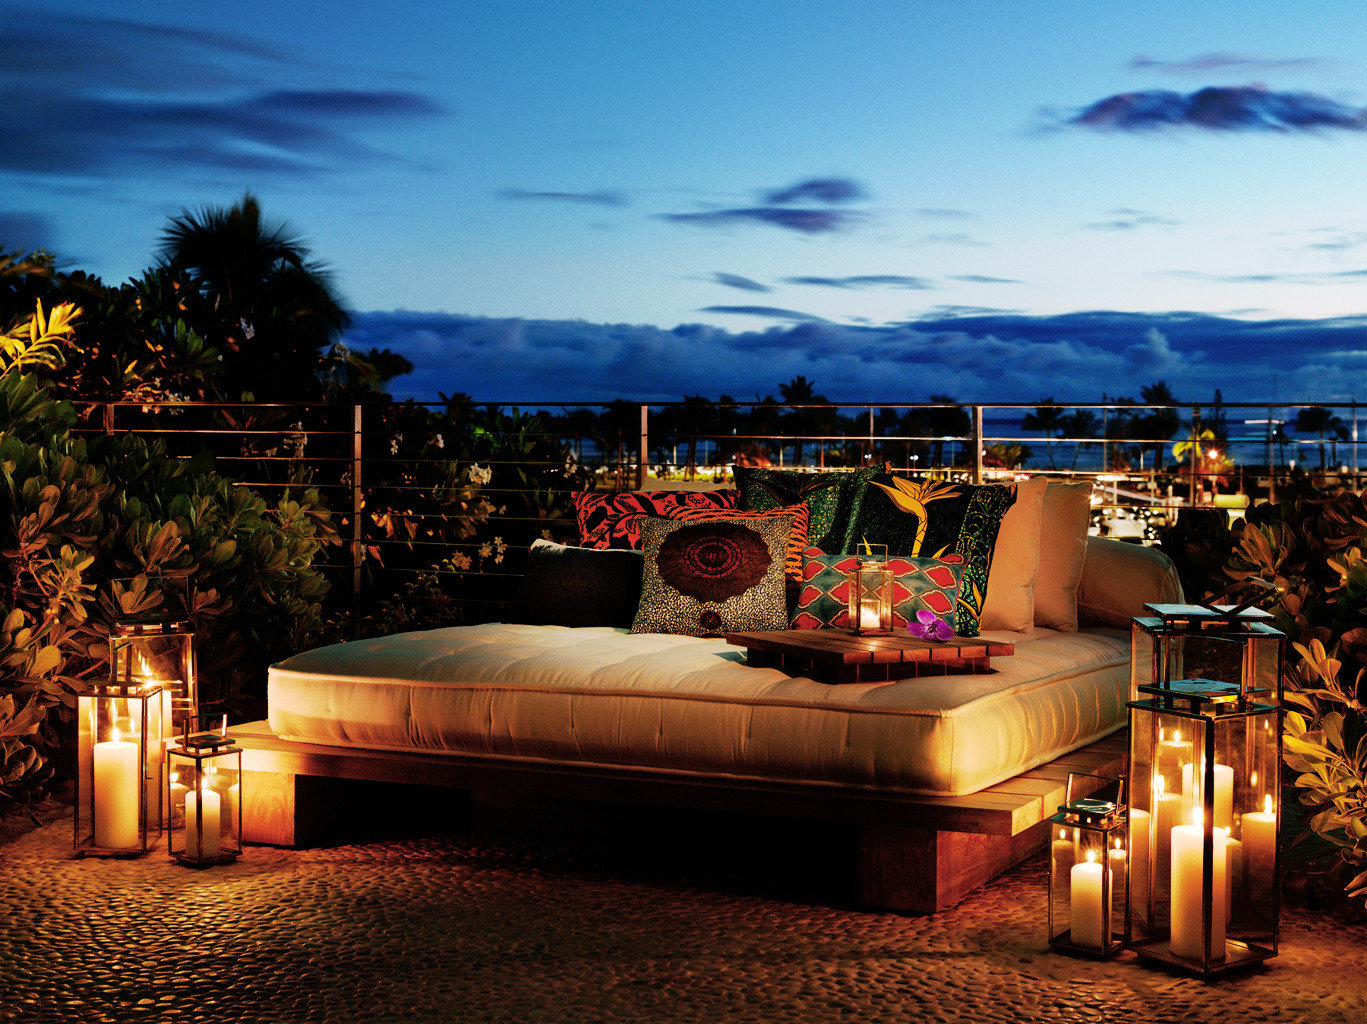 Boutique Hotels Cultural Deck Hawaii Honolulu Hotels Island Lounge Modern Nightlife Pool Romantic Scenic views sky outdoor night evening estate lighting home Resort Sunset dusk landscape lighting